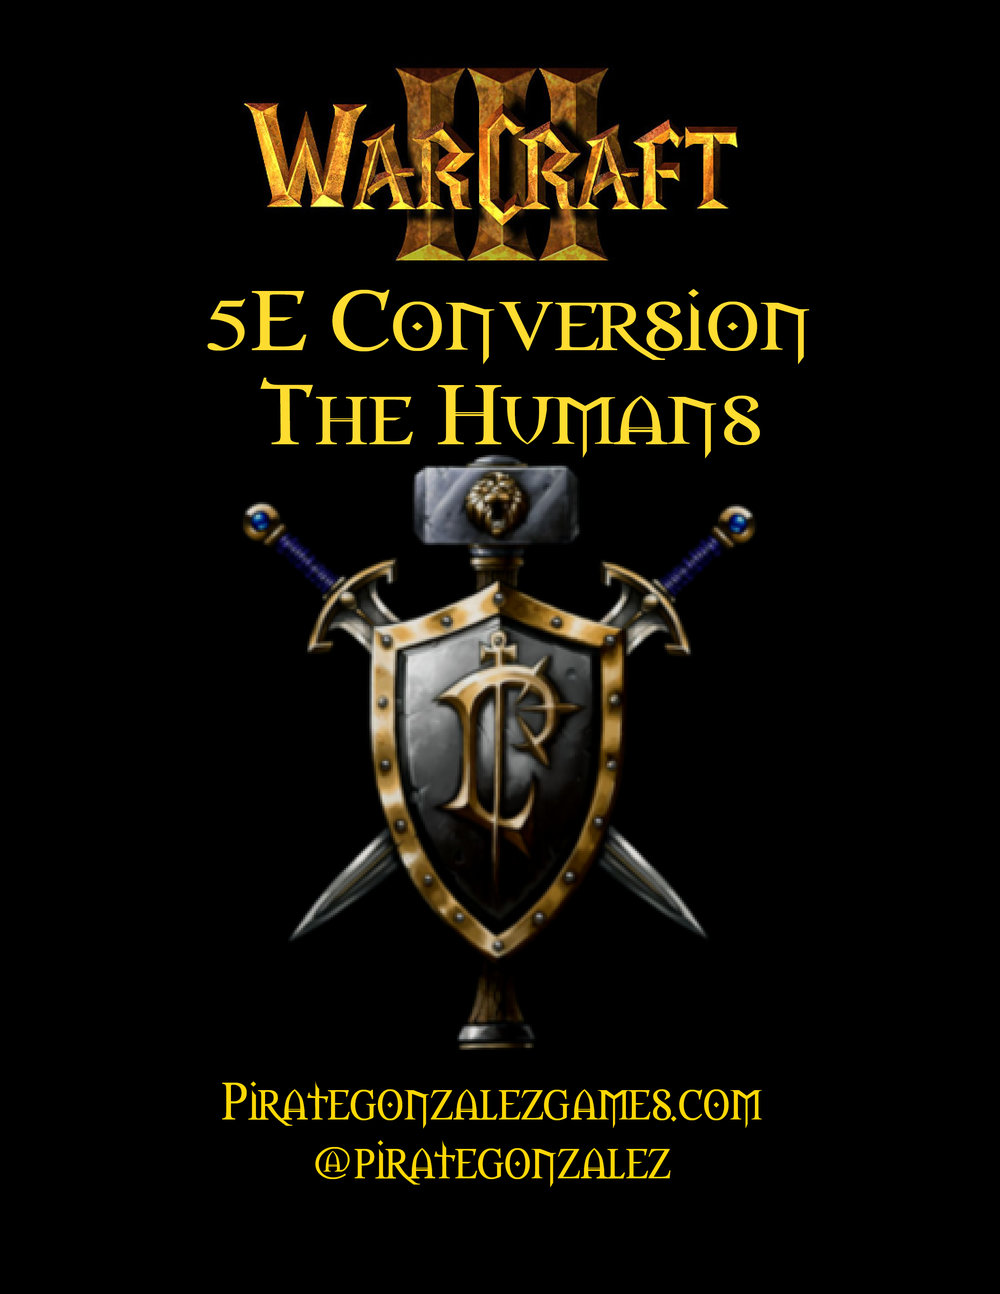 Warcraft III: Humans